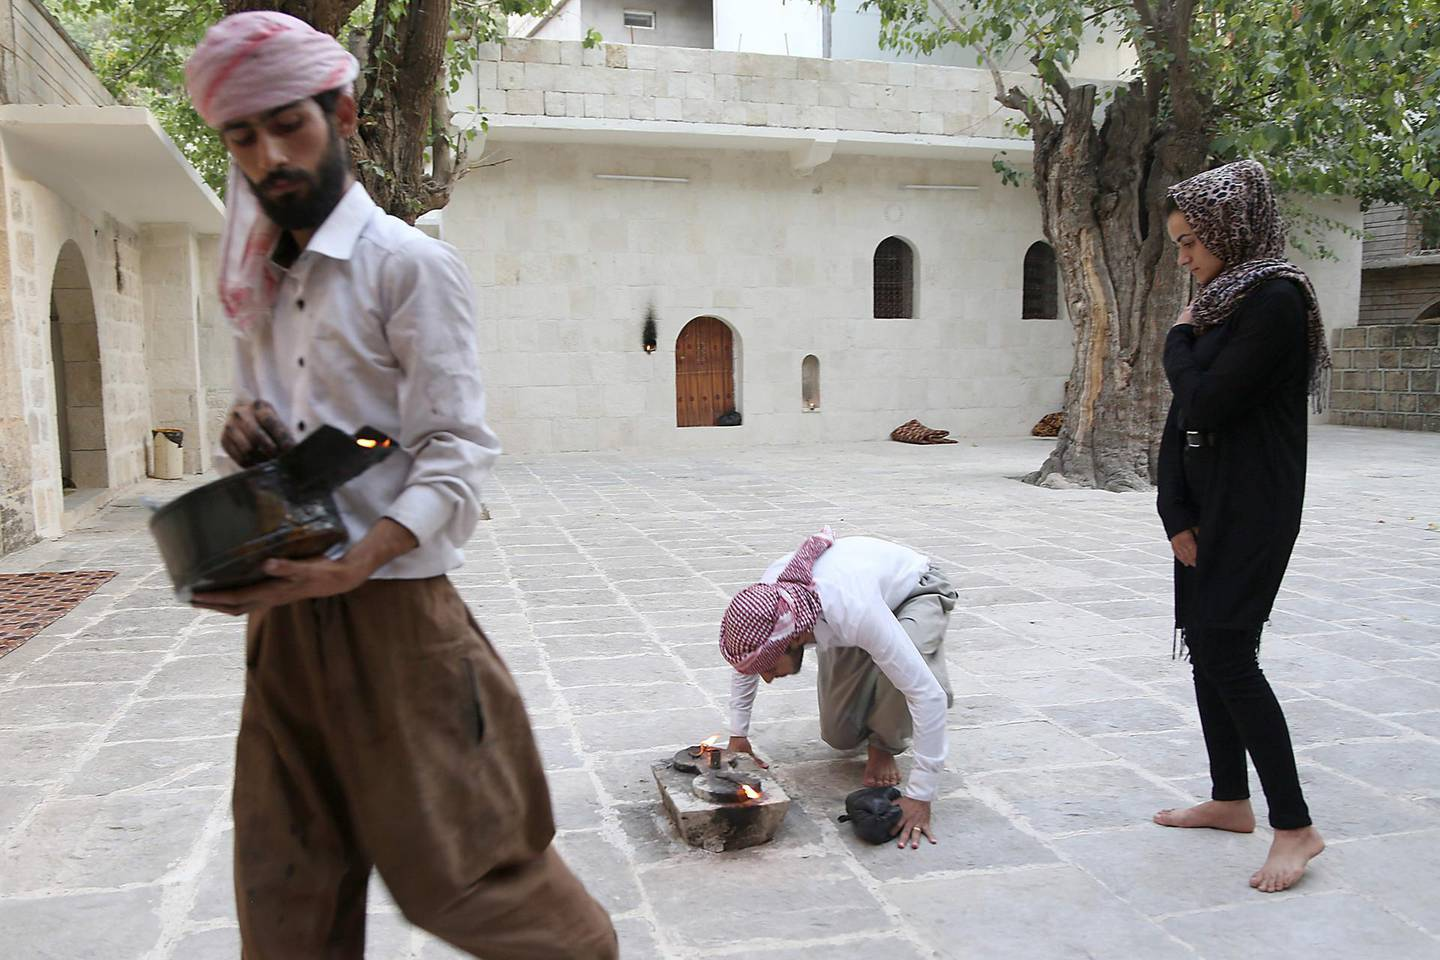 Yazidi woman Ashwaq Haji (R), allegedly used by the Islamic State group (IS) as a sex slave, visits the Lalish temple in tribute to the jihadists' victims from her village of Kocho near Sinjar, in Lalish, northern Iraq, on August 15, 2018. - A young Yazidi woman who fled to Germany but returned home to northern Iraq says she cannot escape her Islamic State group captor who held her as a sex slave for three months.  Ashwaq Haji, 19, says she ran into the man in a German supermarket in February. Traumatised by the encounter, she returned to Iraq the next month. Like many other Yazidis, she was kidnapped by IS when the jihadists seized swathes of Iraq in the summer of 2014. (Photo by - / AFP)